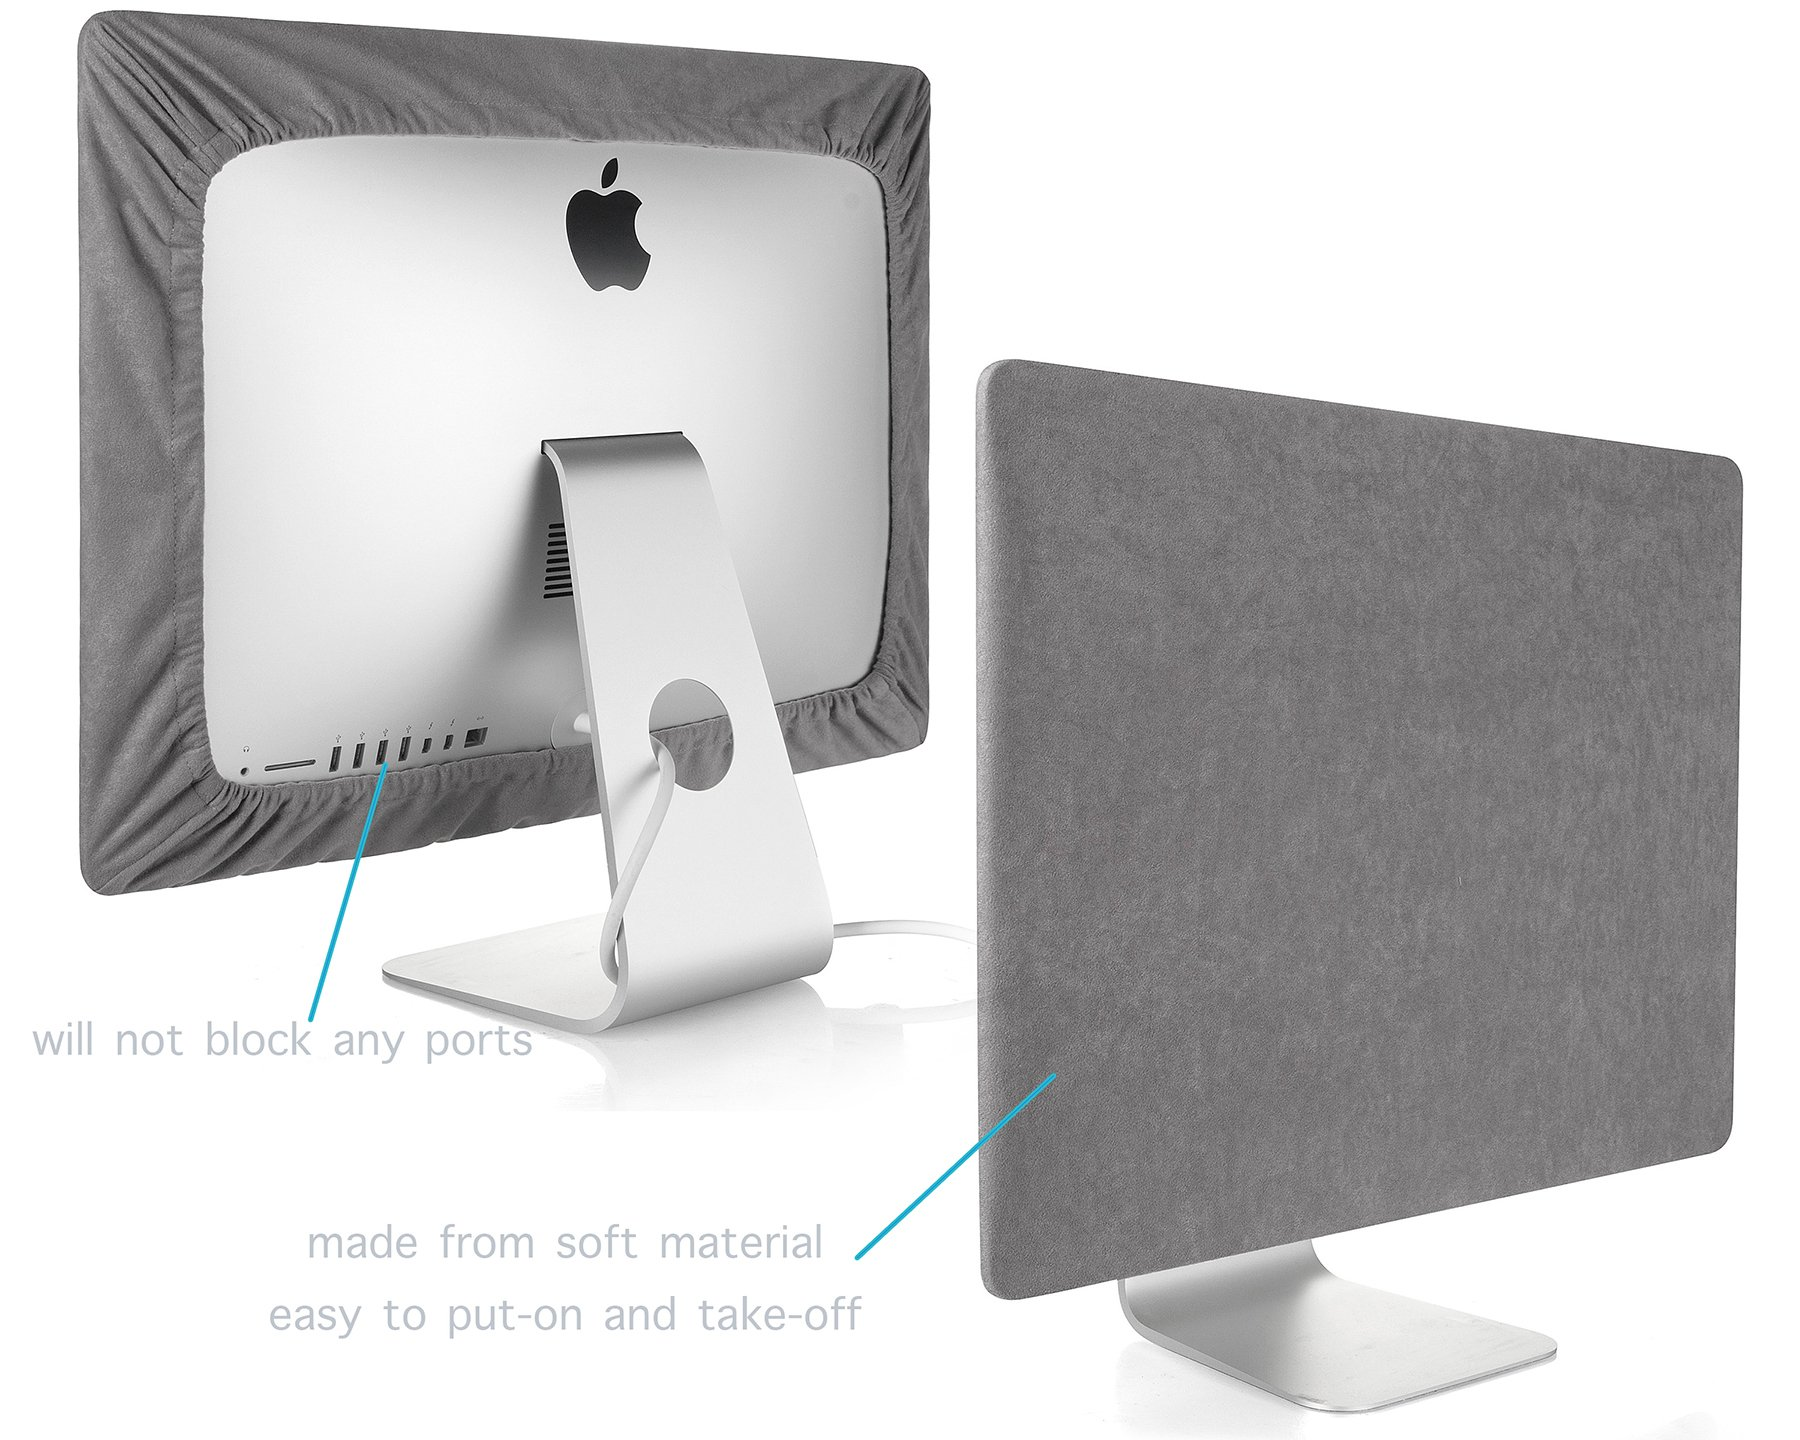 Kuzy Screen Cover for iMac 27-inch Dust Cover Display Protector (Models: A1862, A1419, A1312) - GRAY